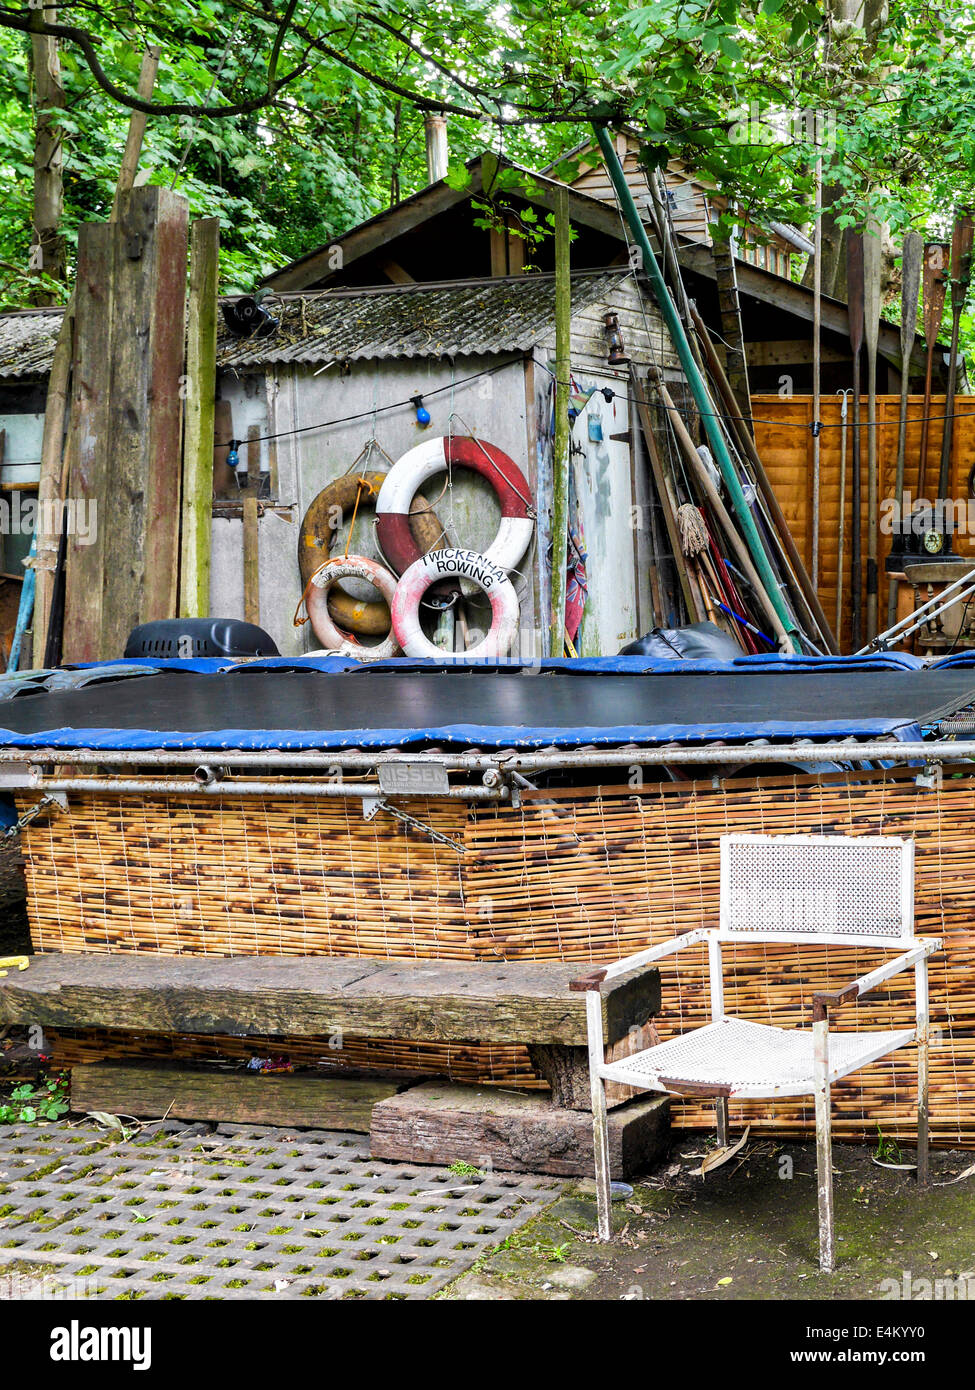 Old chair, bench and life belts near artist's studios in the working boatyard on Eel Pie Island. Twickenham - Stock Image